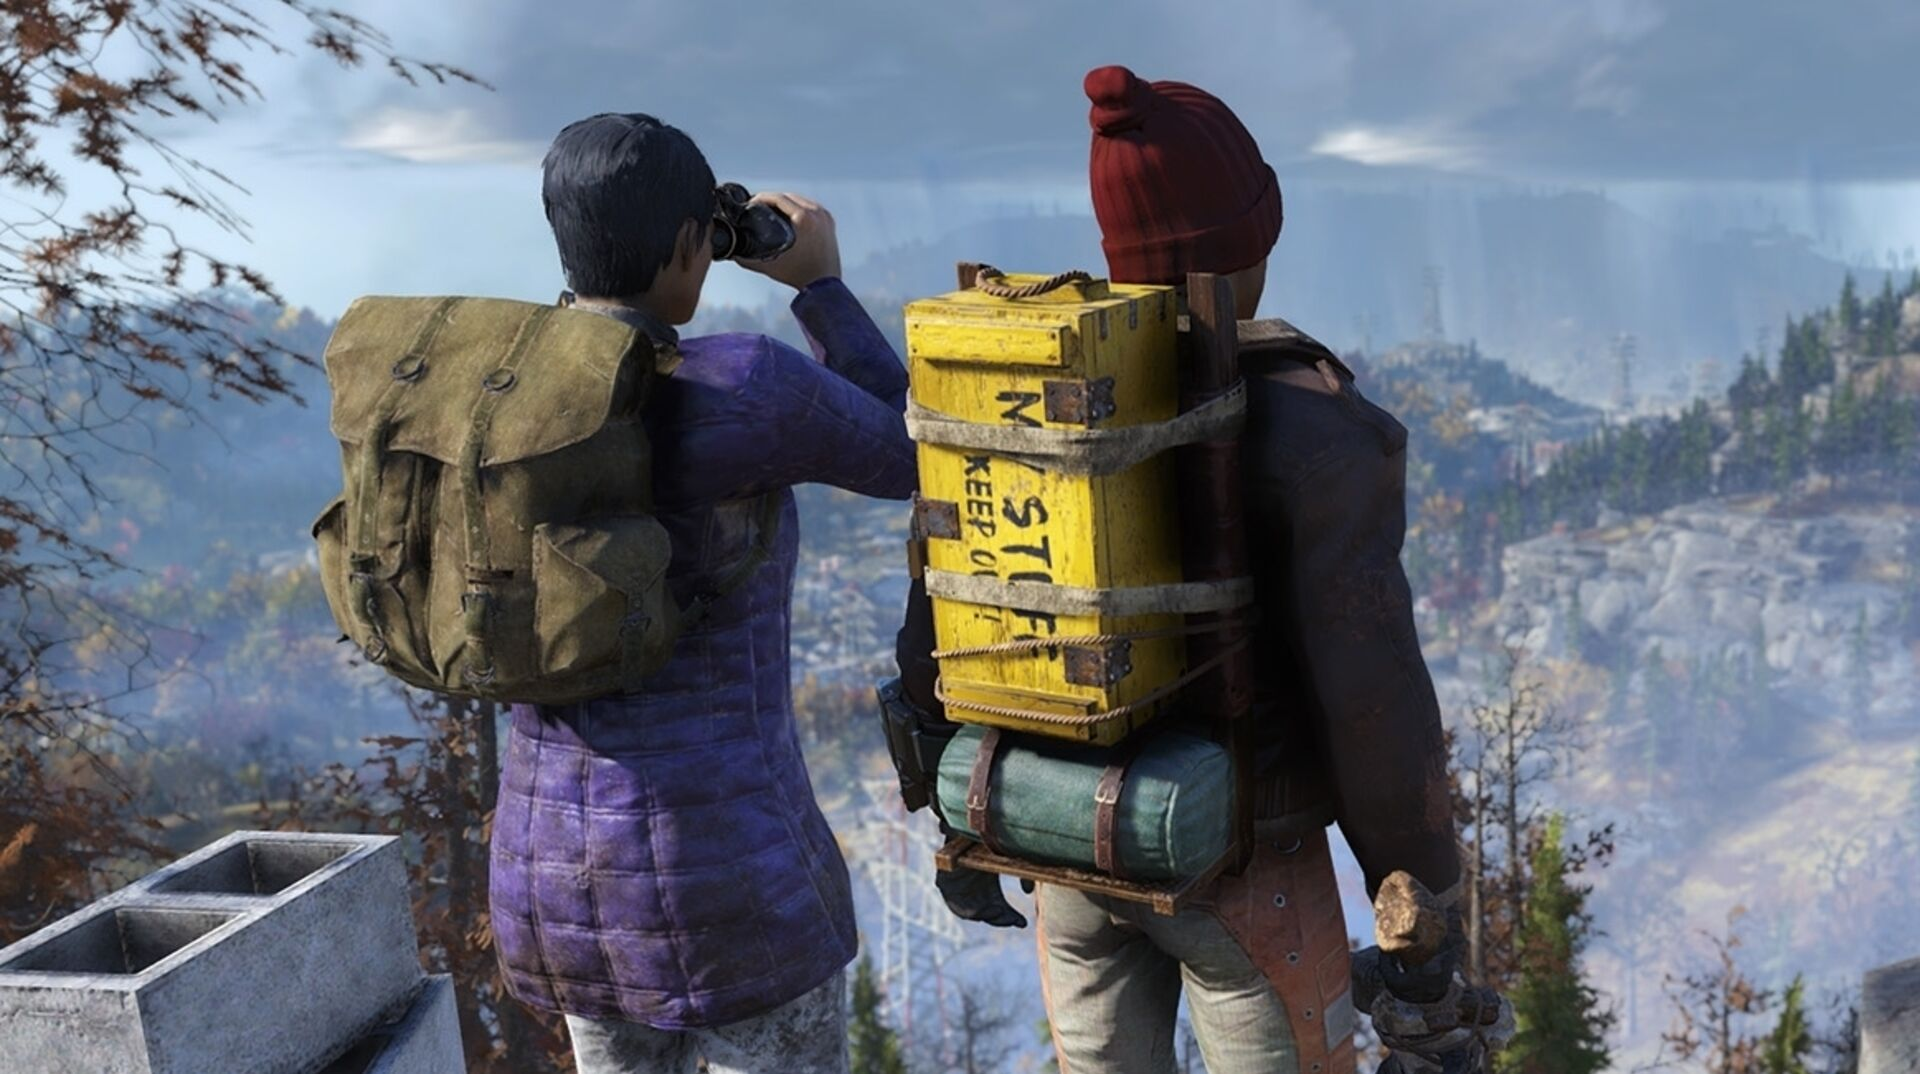 Fallout 76 is getting backpacks • Eurogamer net